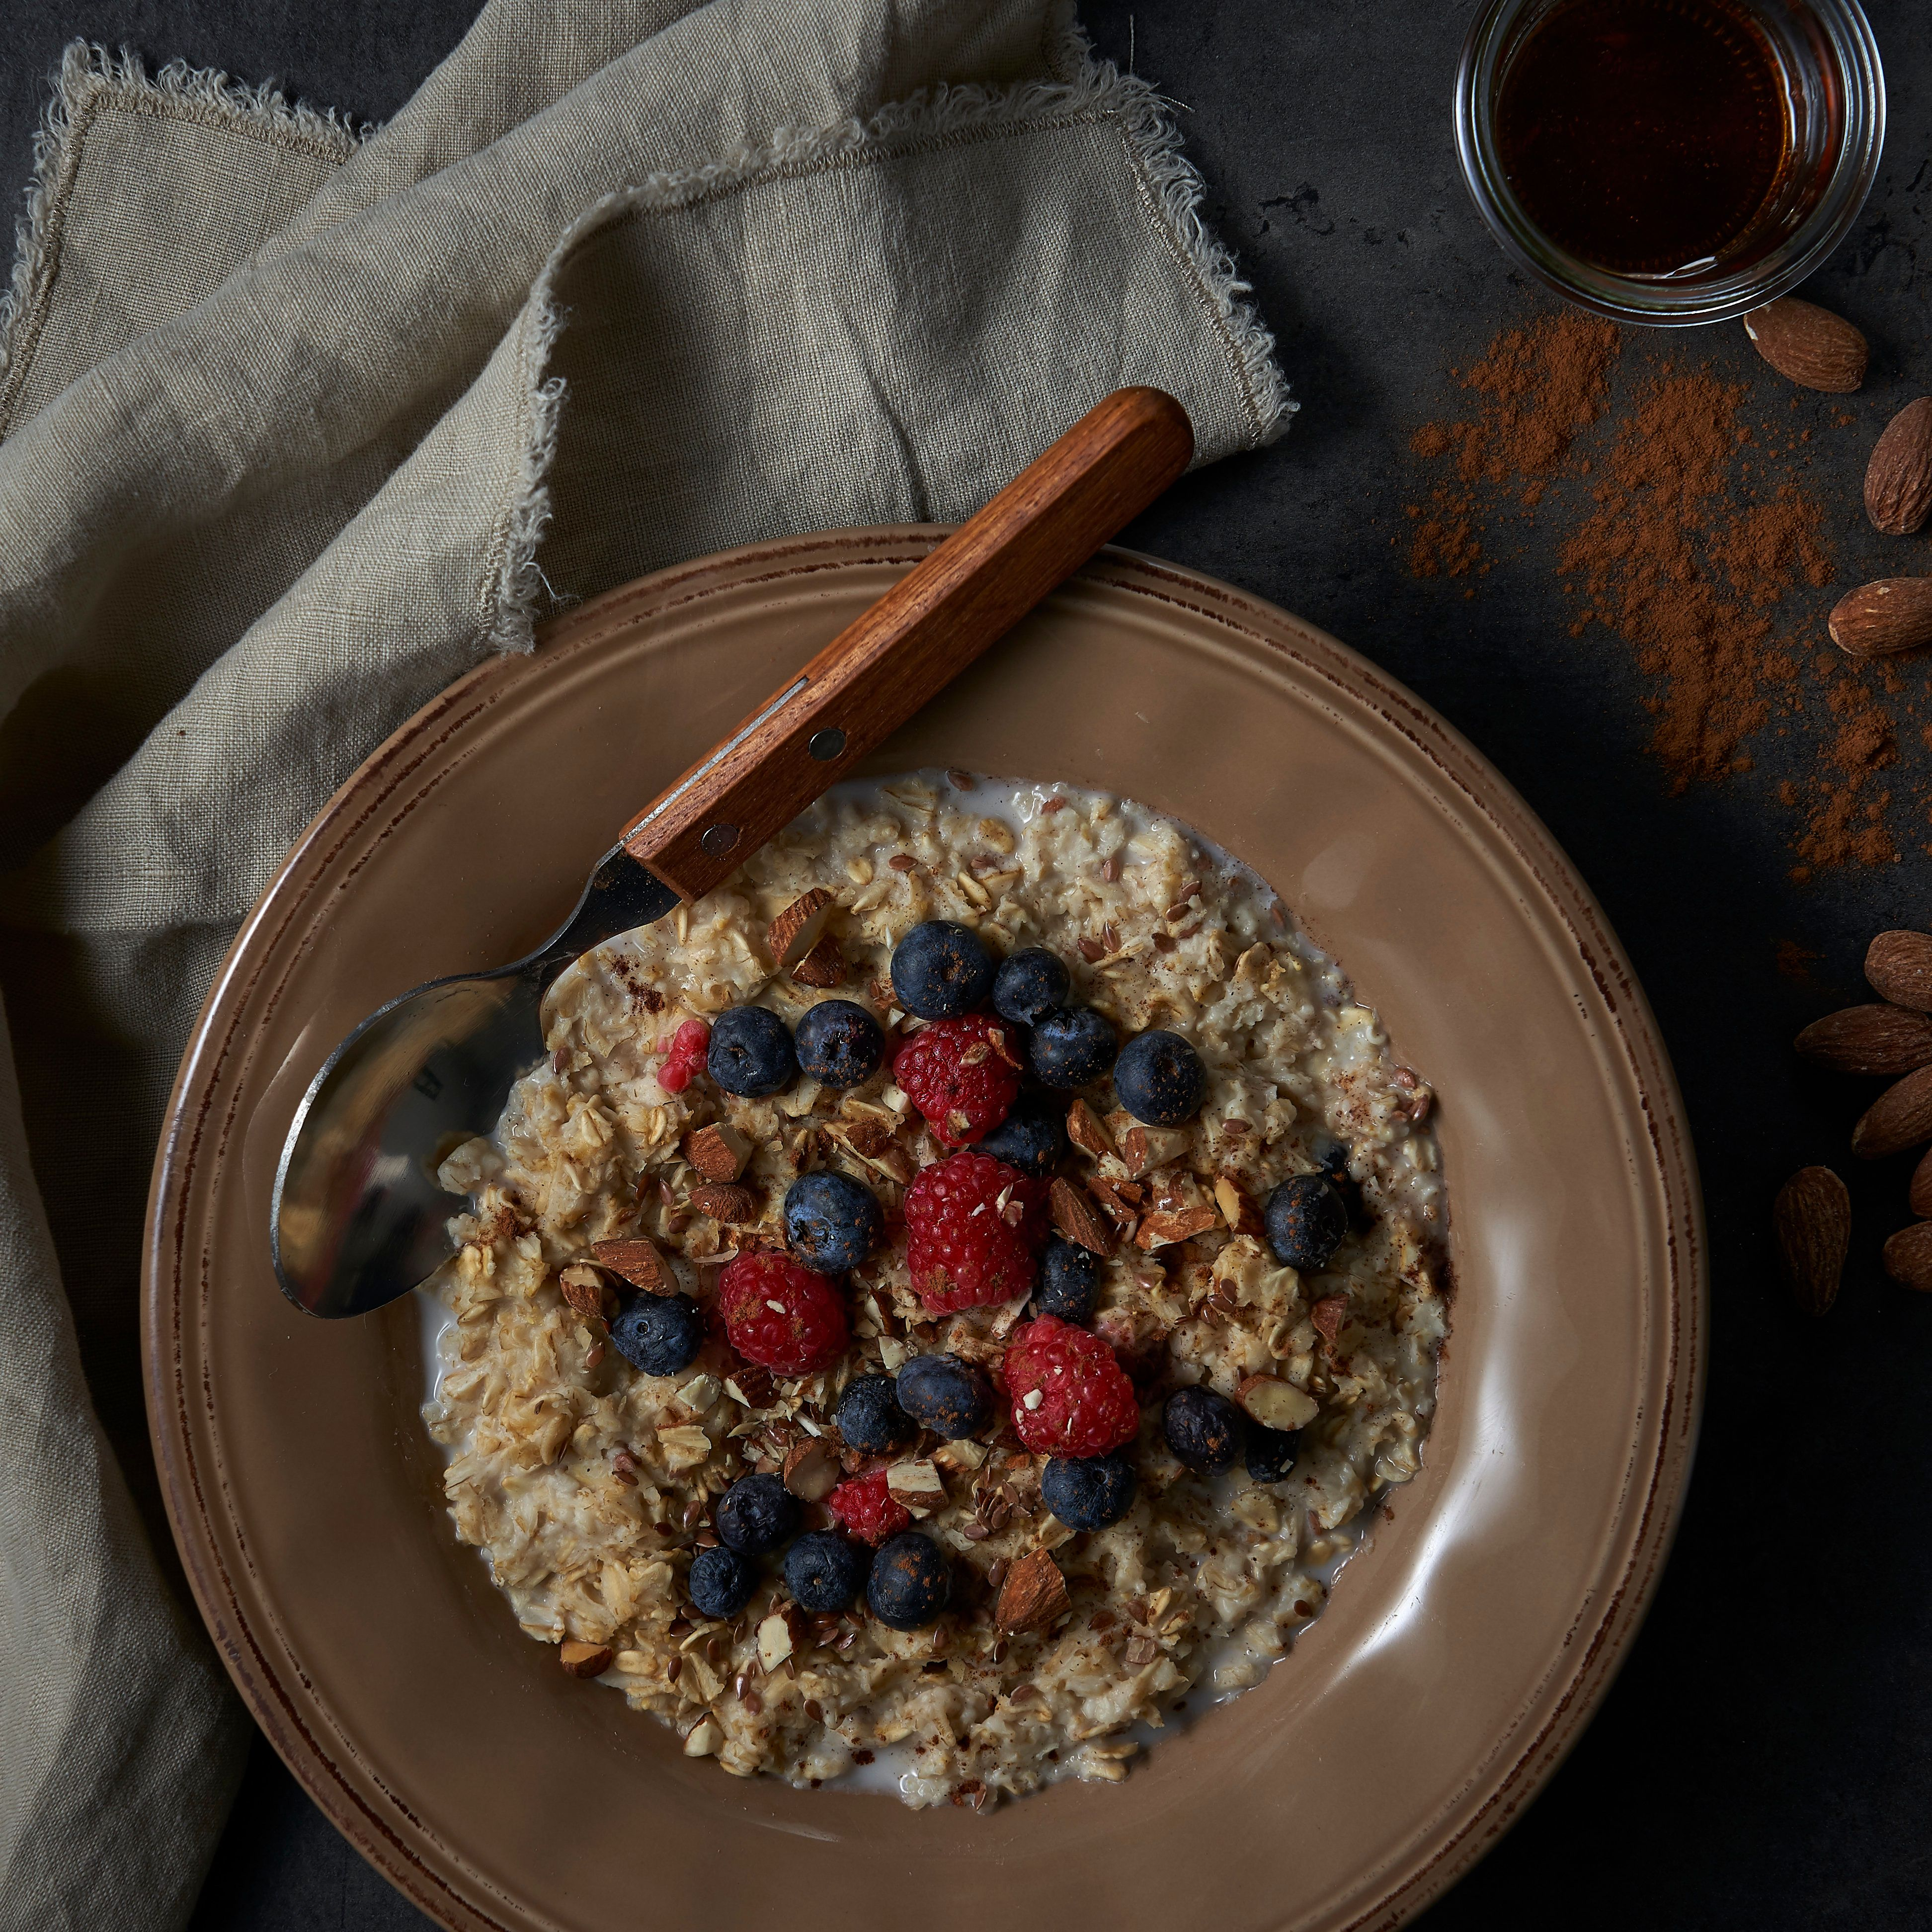 5 Ways To Make Overnight Oats That Chefs Swear By